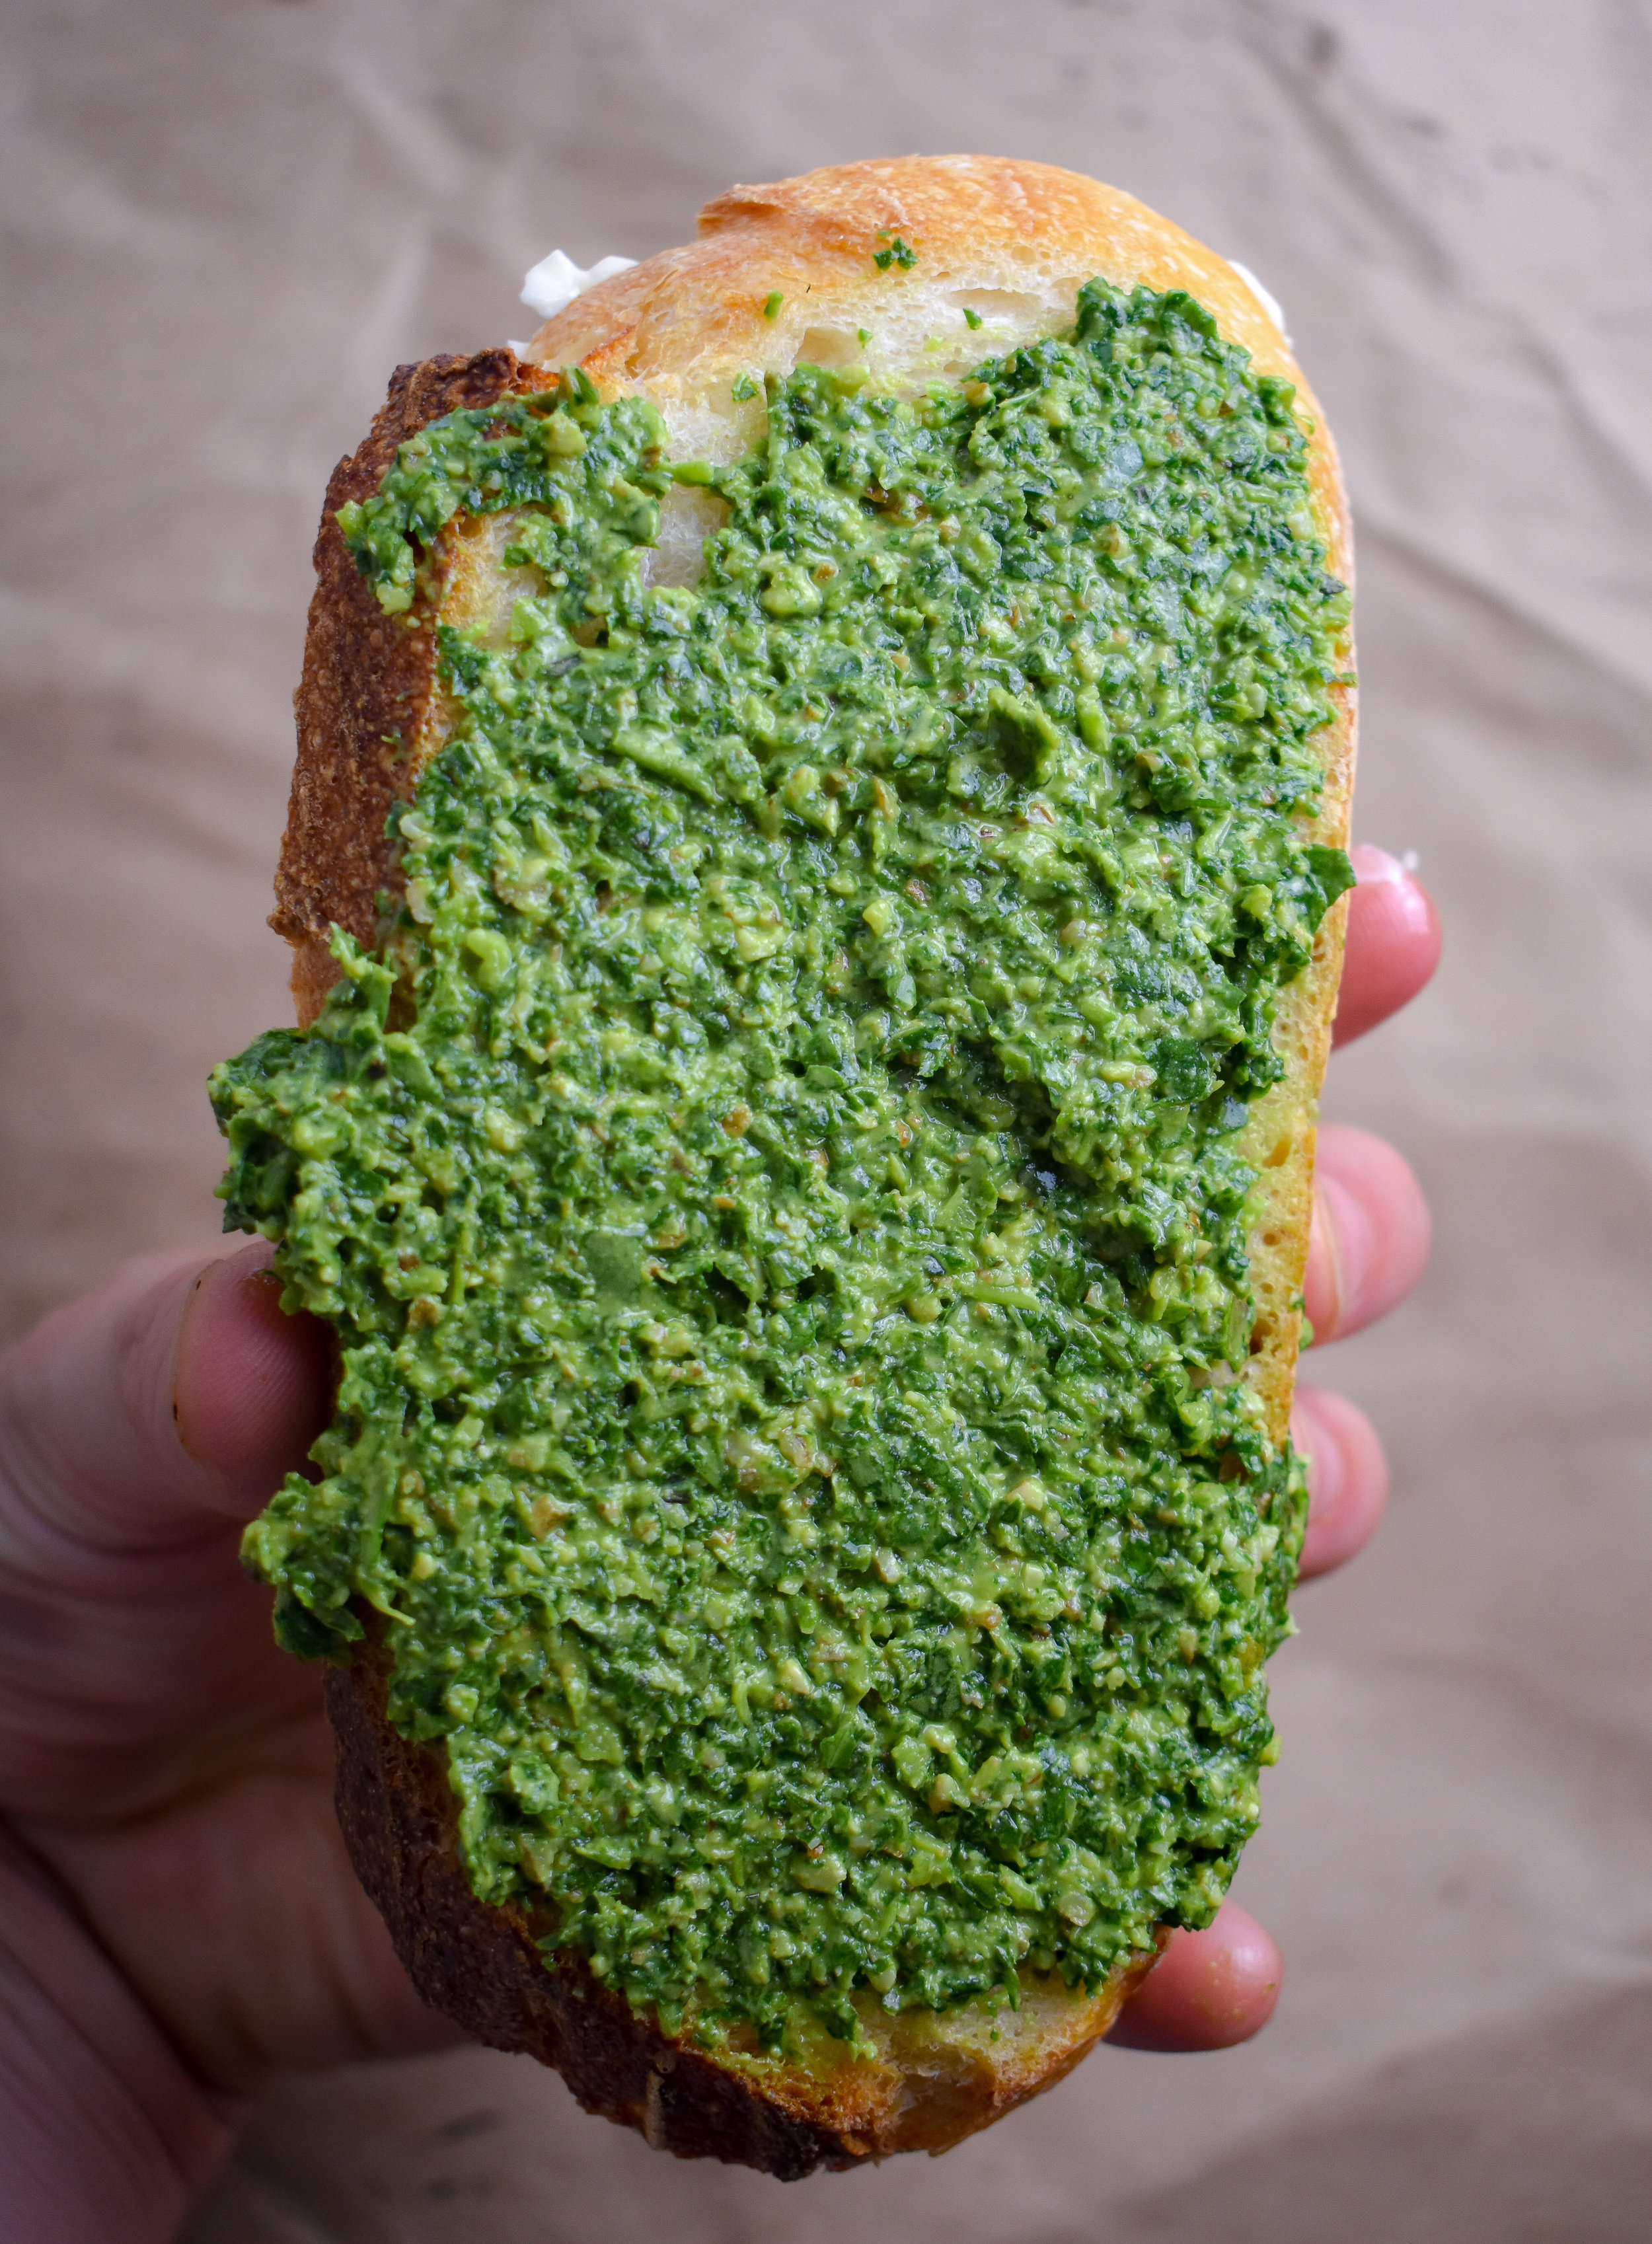 9. With the rest of the bread, butter one side and carefully spread pesto to the other side. Then, place the pesto side onto the cheese mixture side so that the second buttered side is facing up.